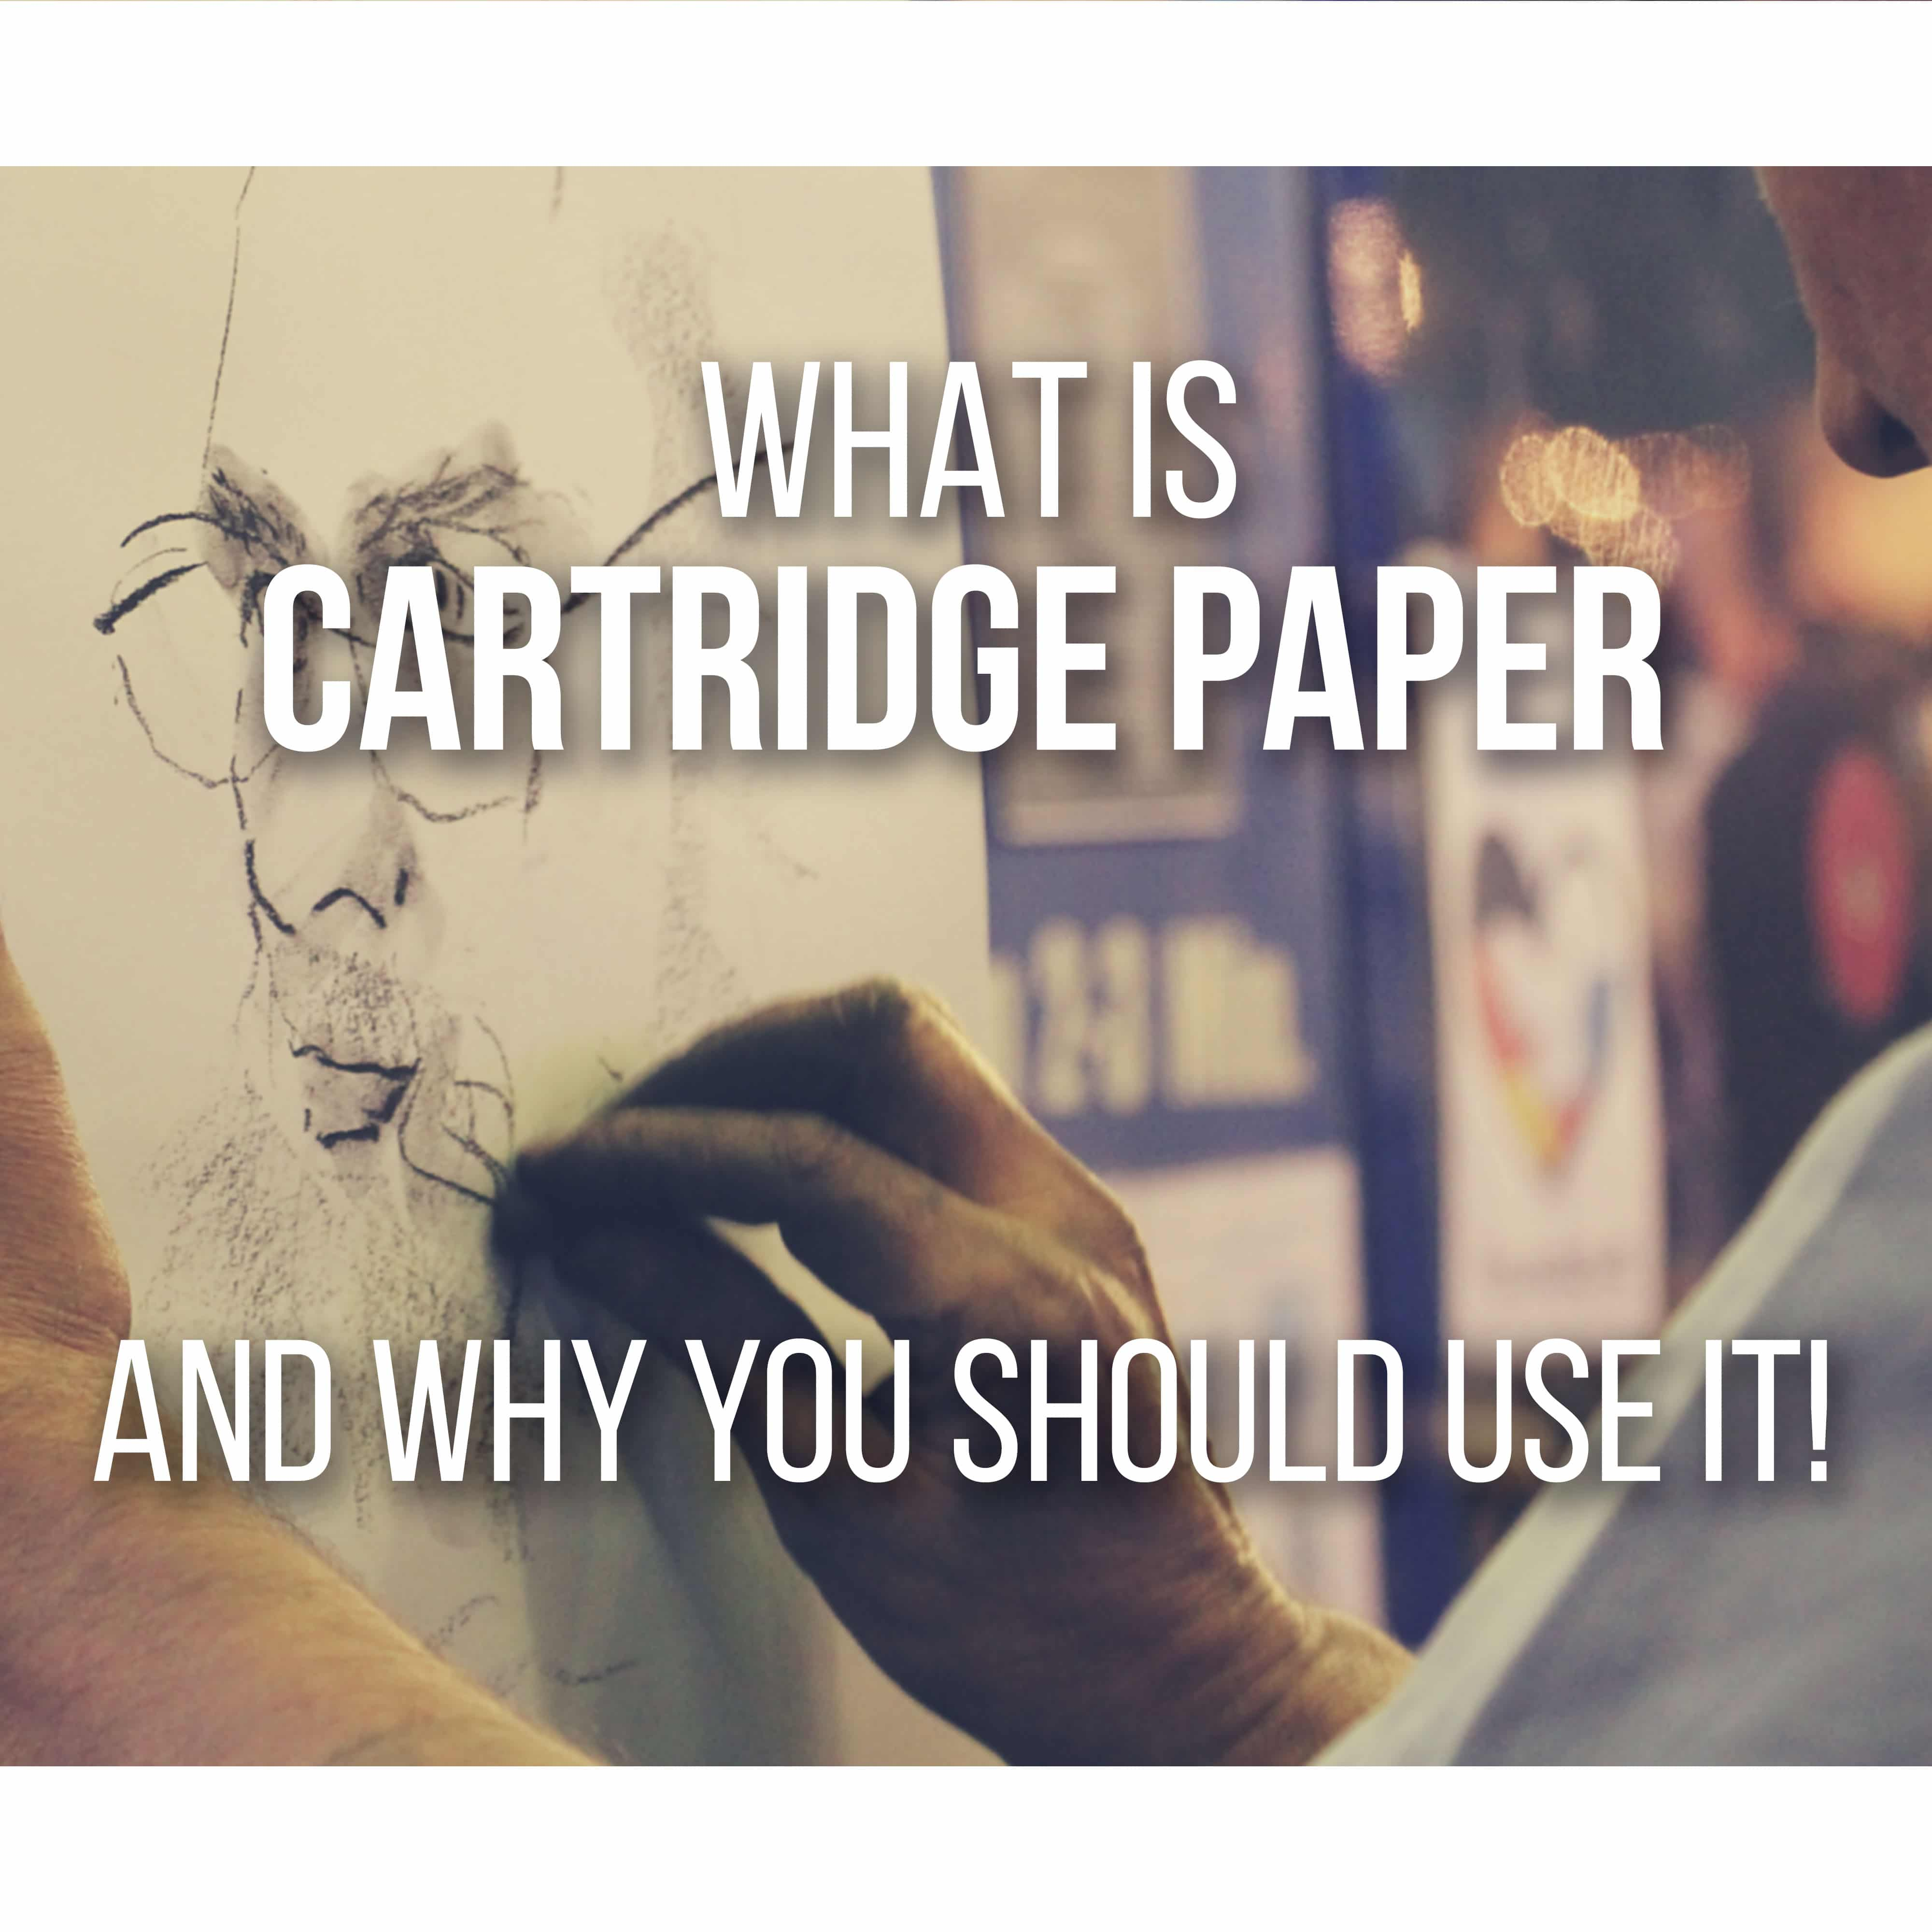 What Is Cartridge Paper - The Things You Need to Know by Don Corgi